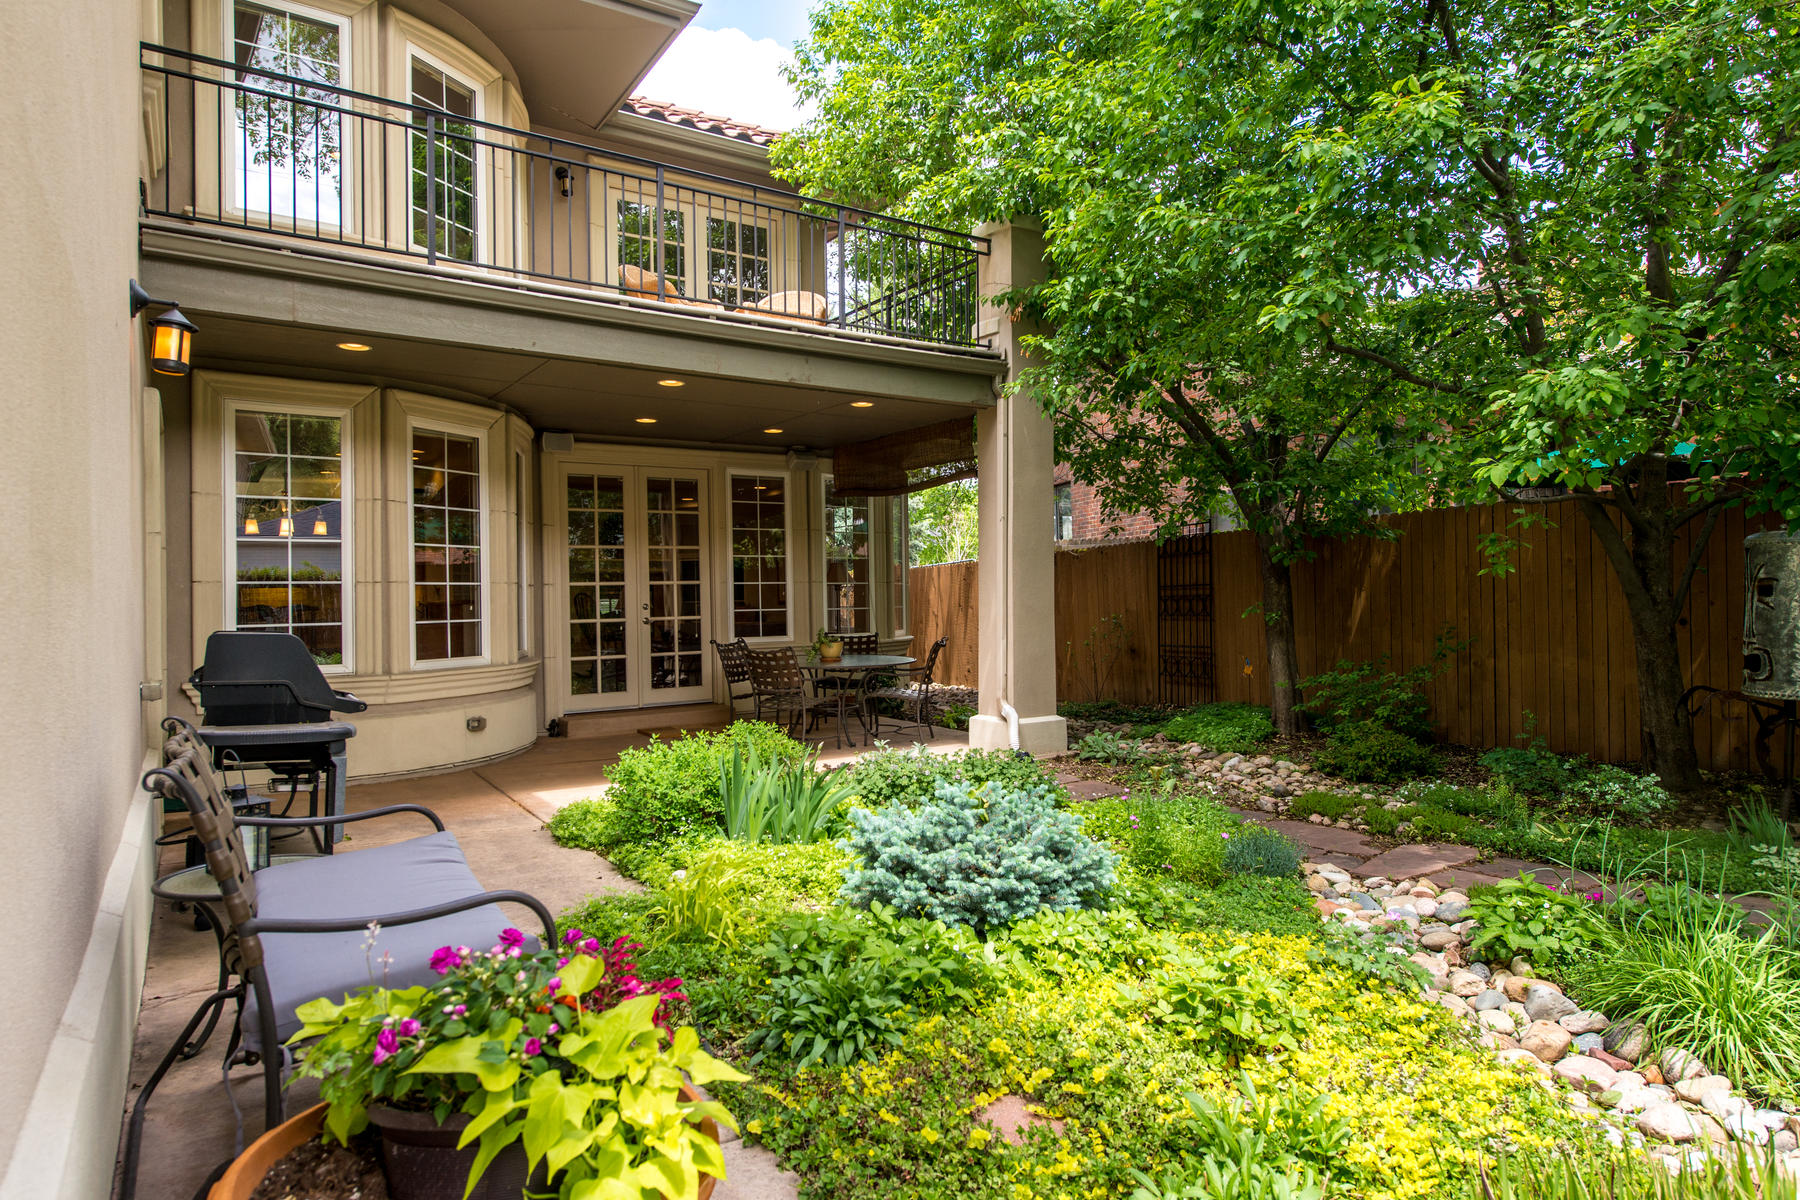 Additional photo for property listing at Tuscan Inspired 1036 S. Clayton Way Denver, Colorado 80209 United States